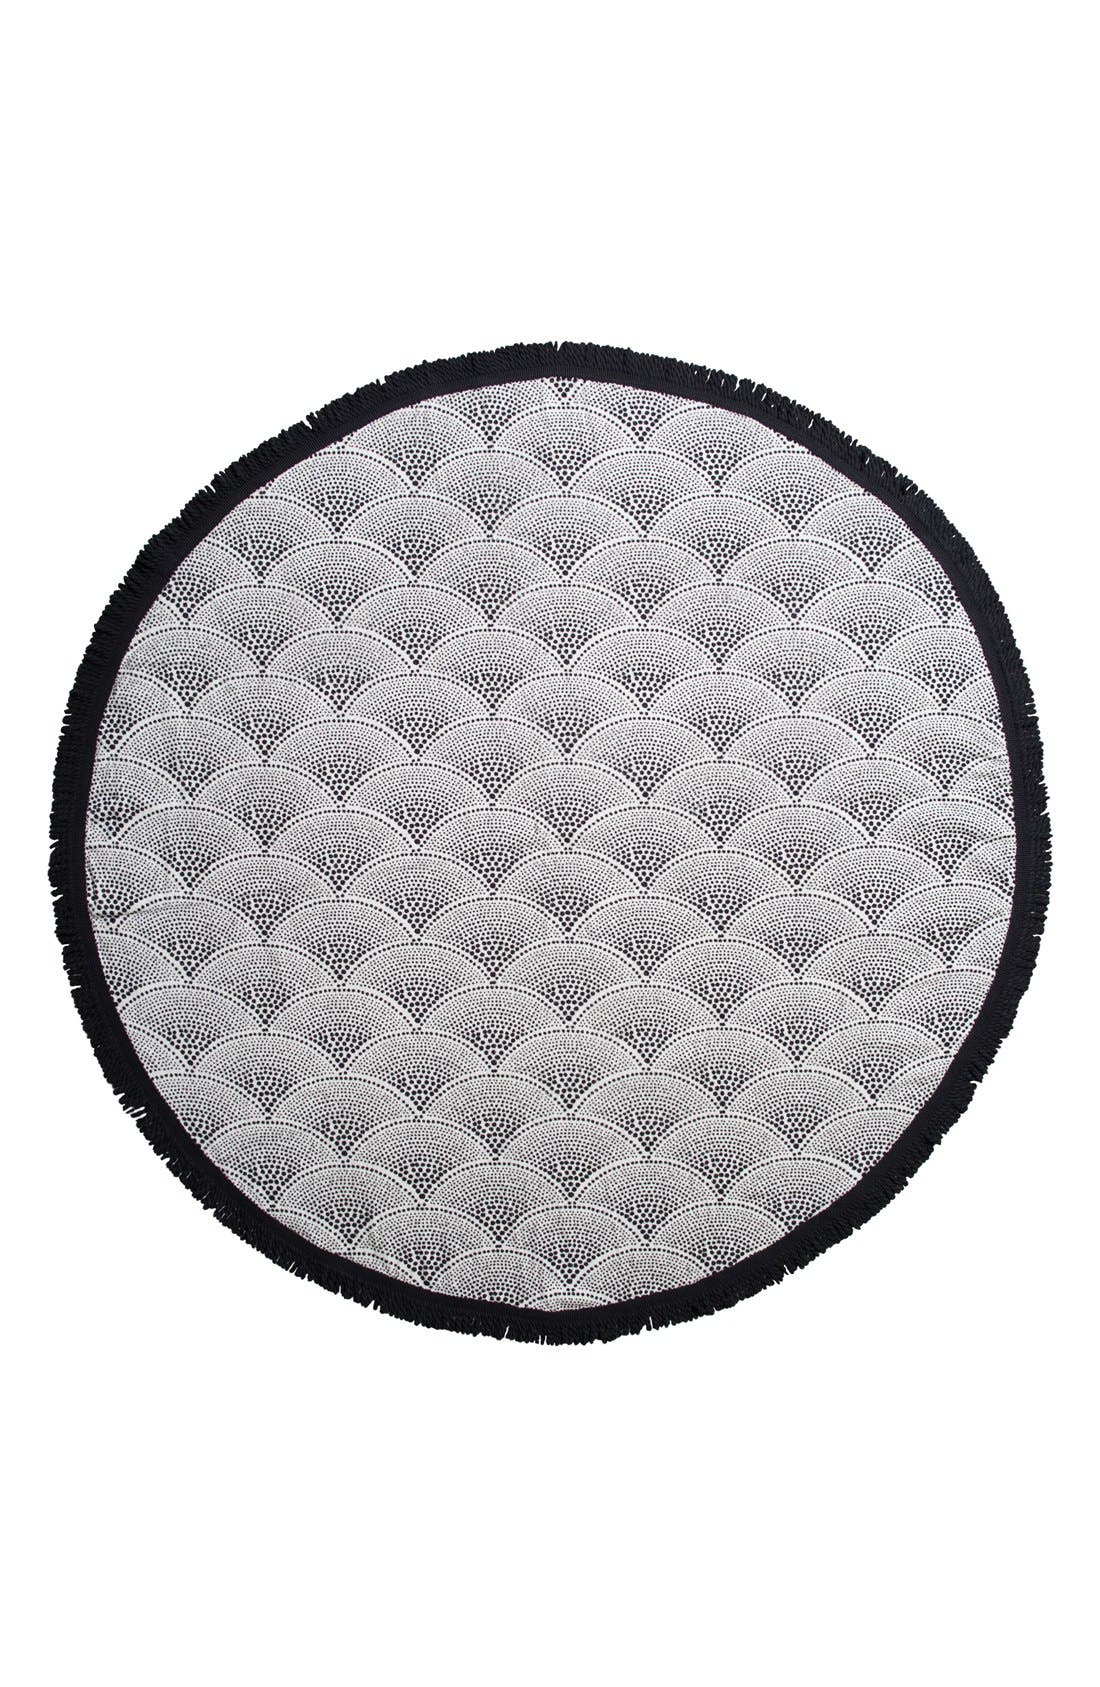 'Amaroo' Round Beach Towel,                         Main,                         color, Black